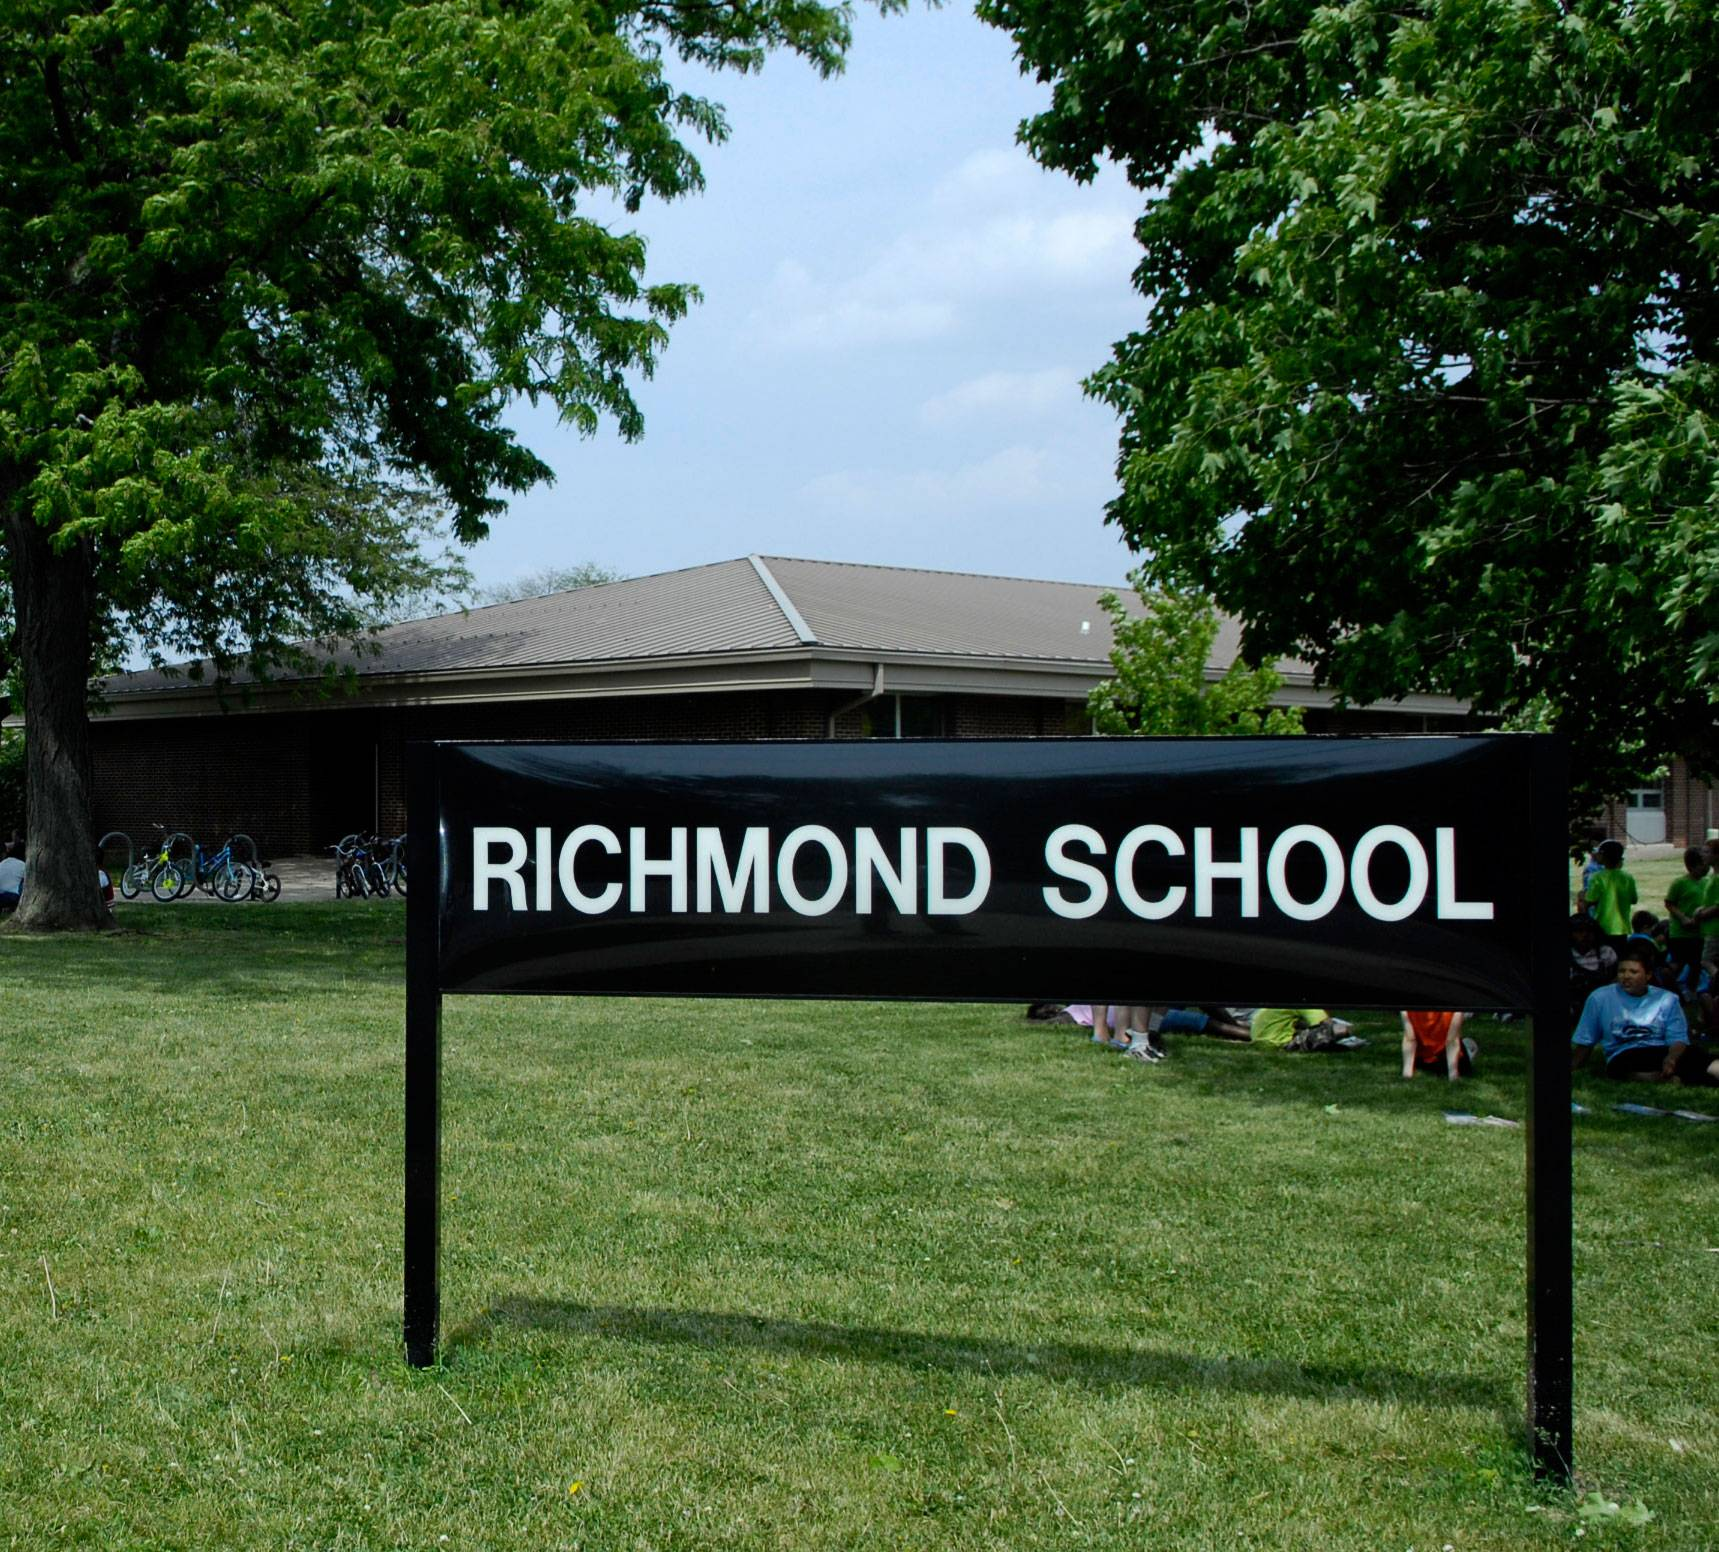 A lawsuit has been filed to keep District 303 from merging two elementary schools, including Richmond School.